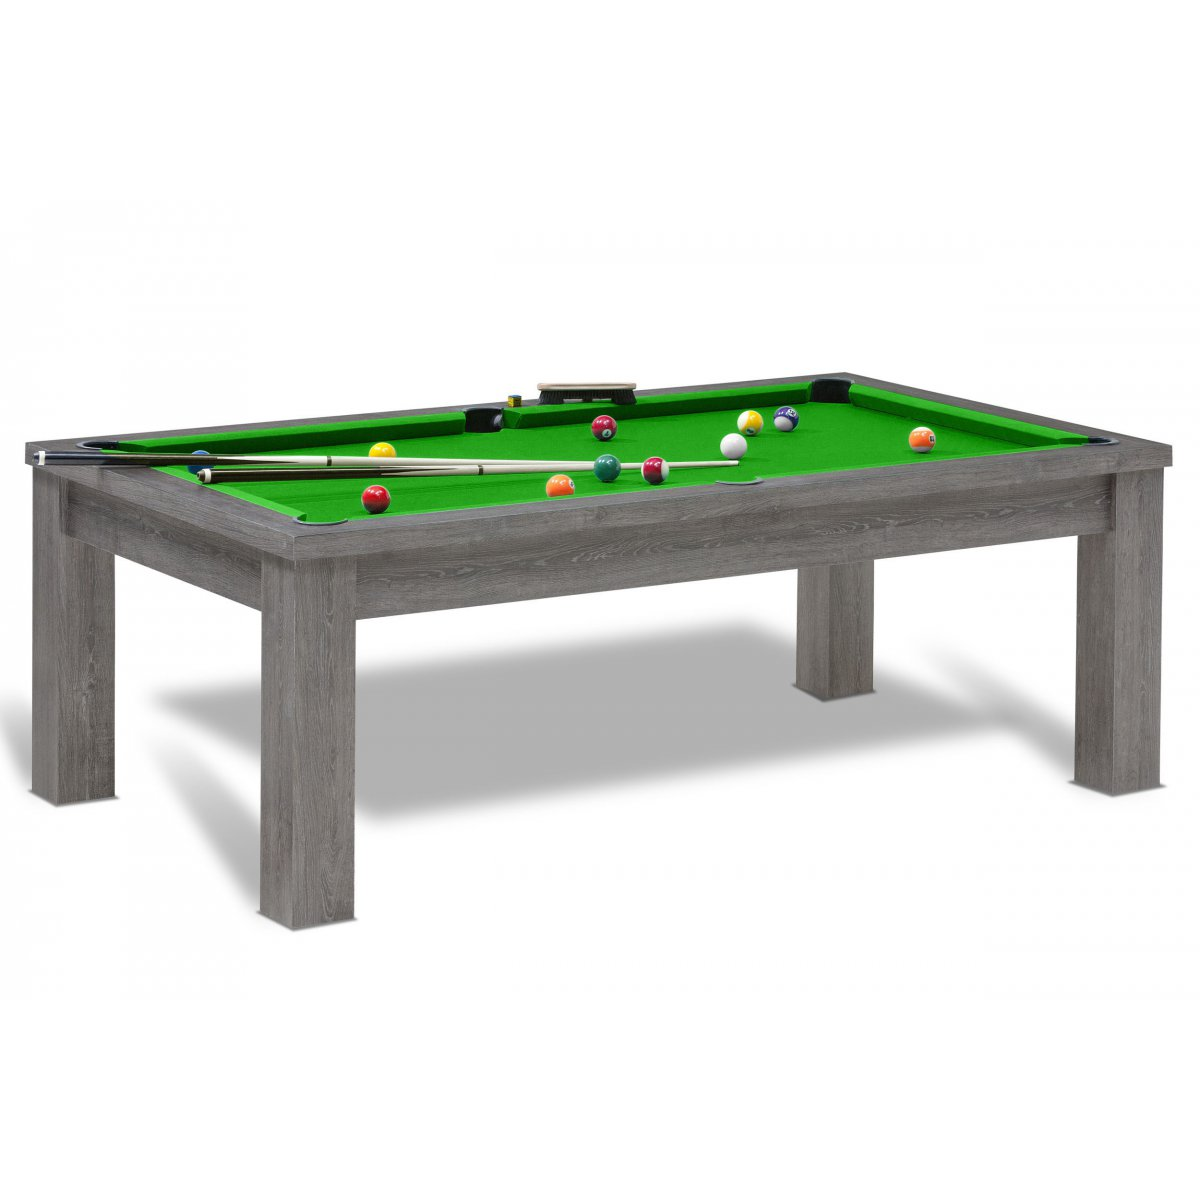 Billard am ricain table de jeu de billard us convertible - Table billard transformable occasion ...